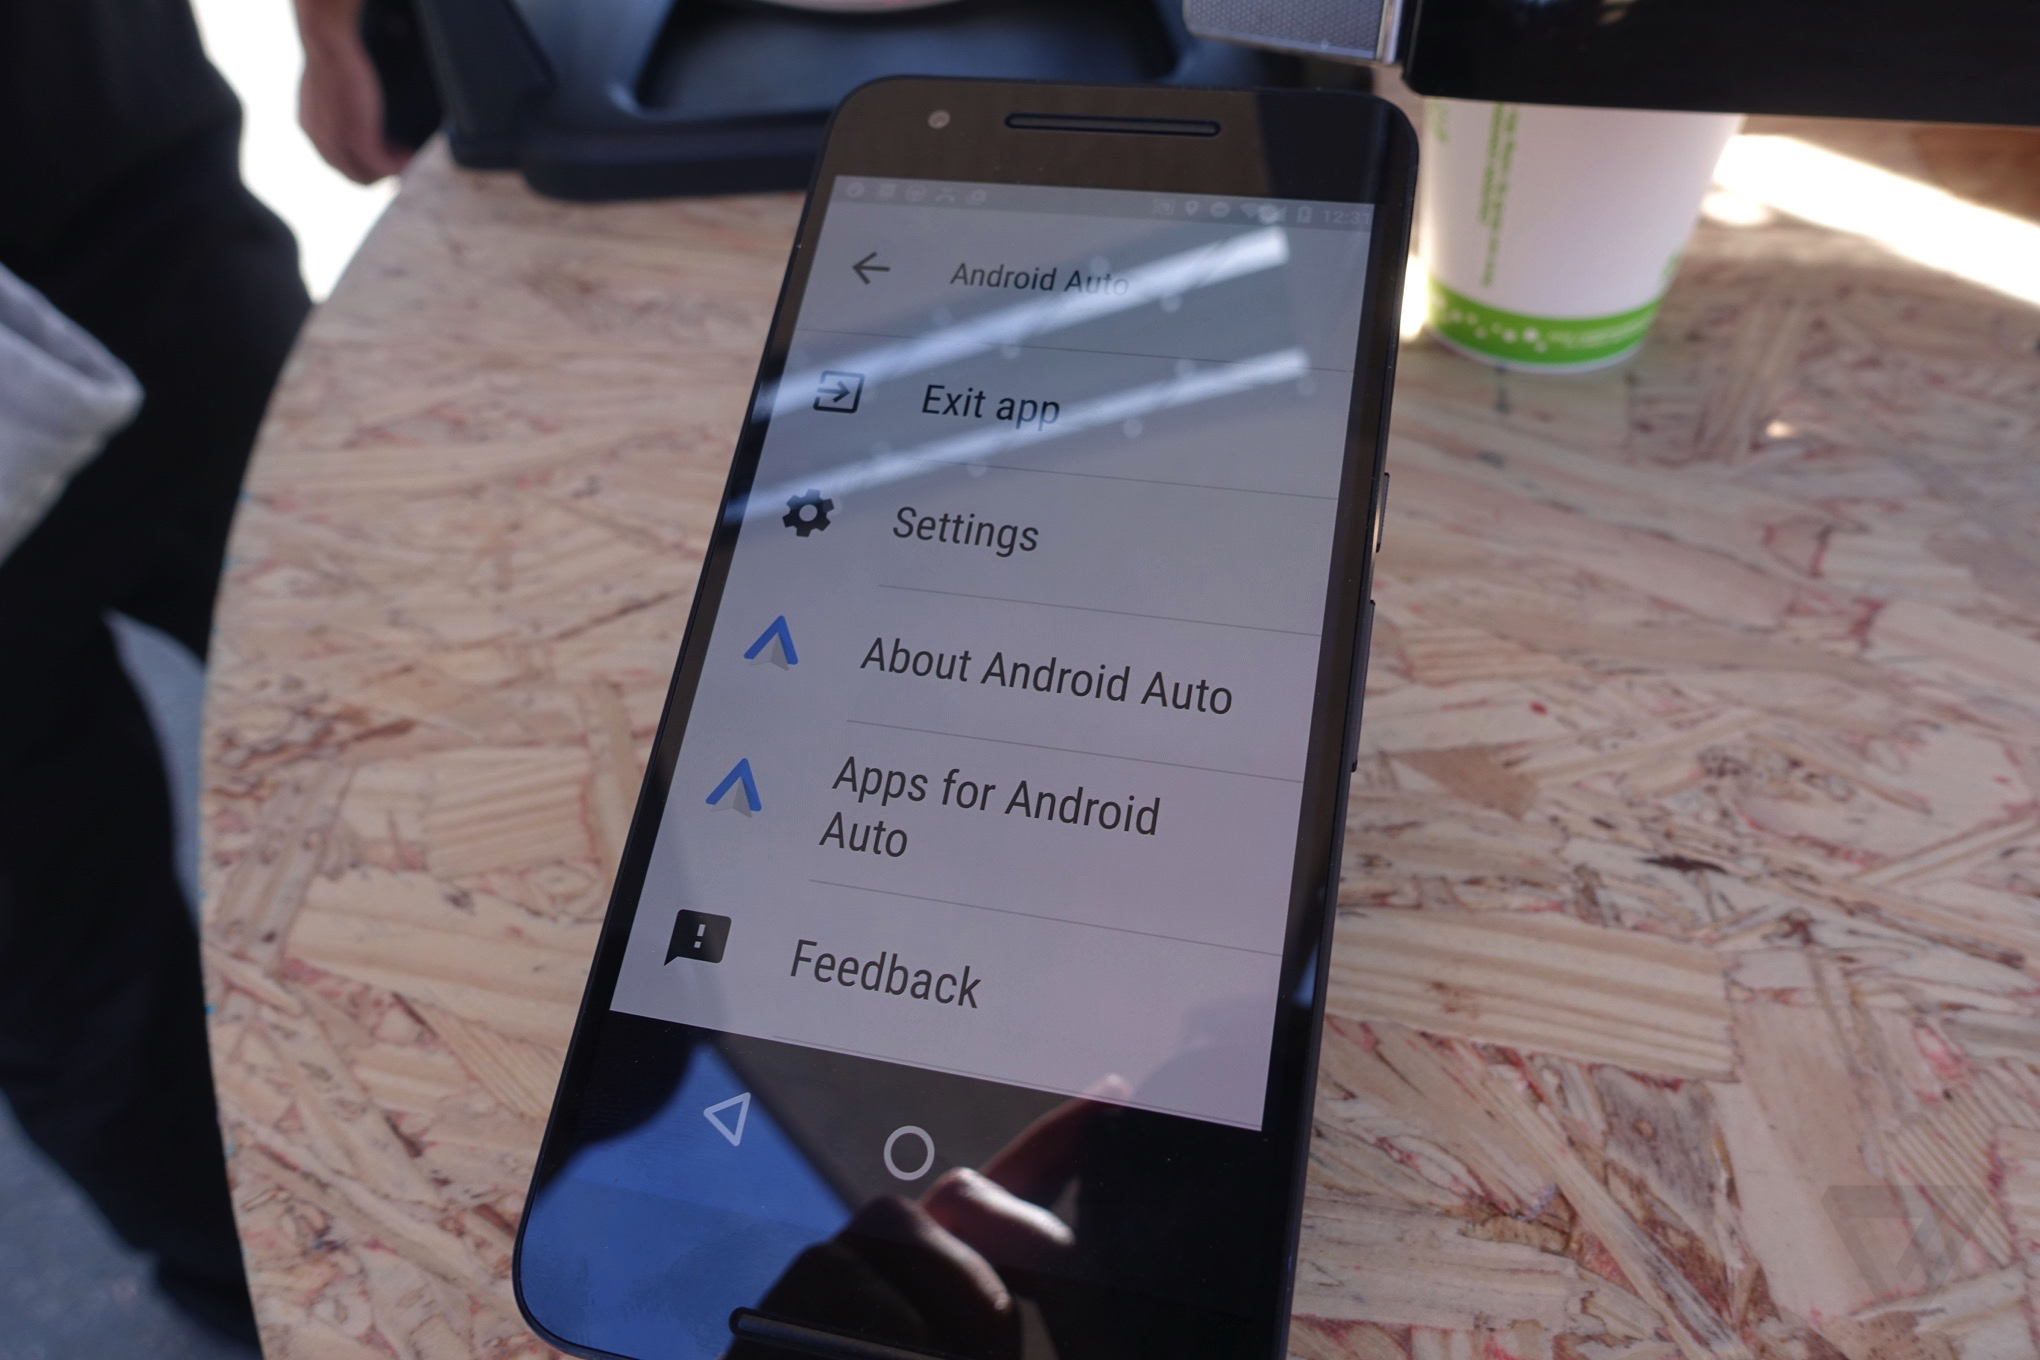 You don't need an Android Auto-compatible car to use Android Auto